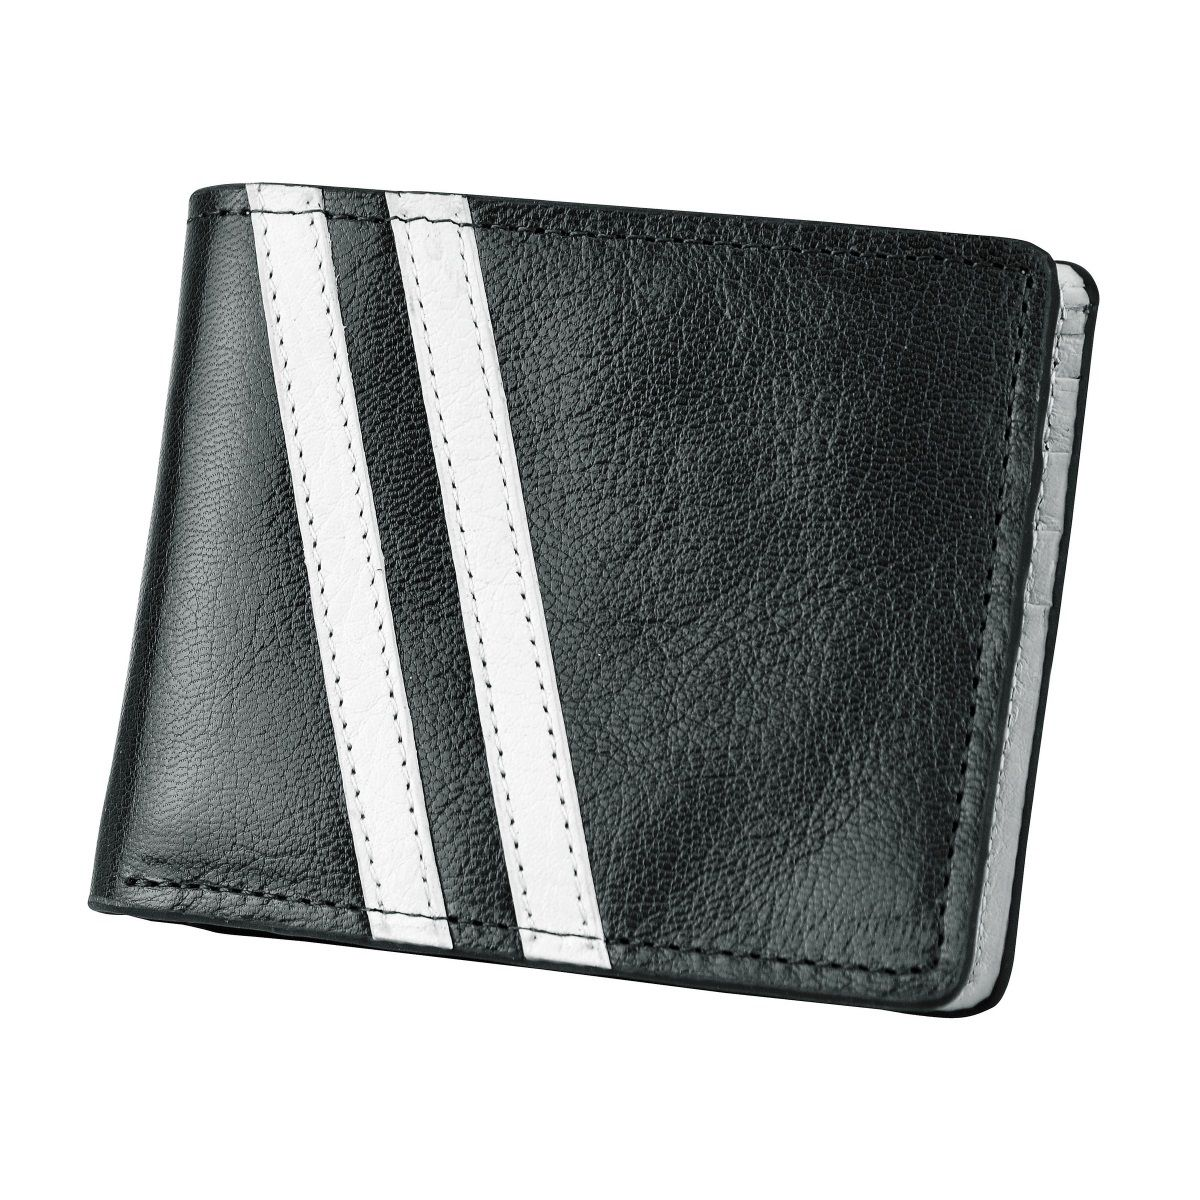 J.FOLD Roadster Leather Wallet - Black